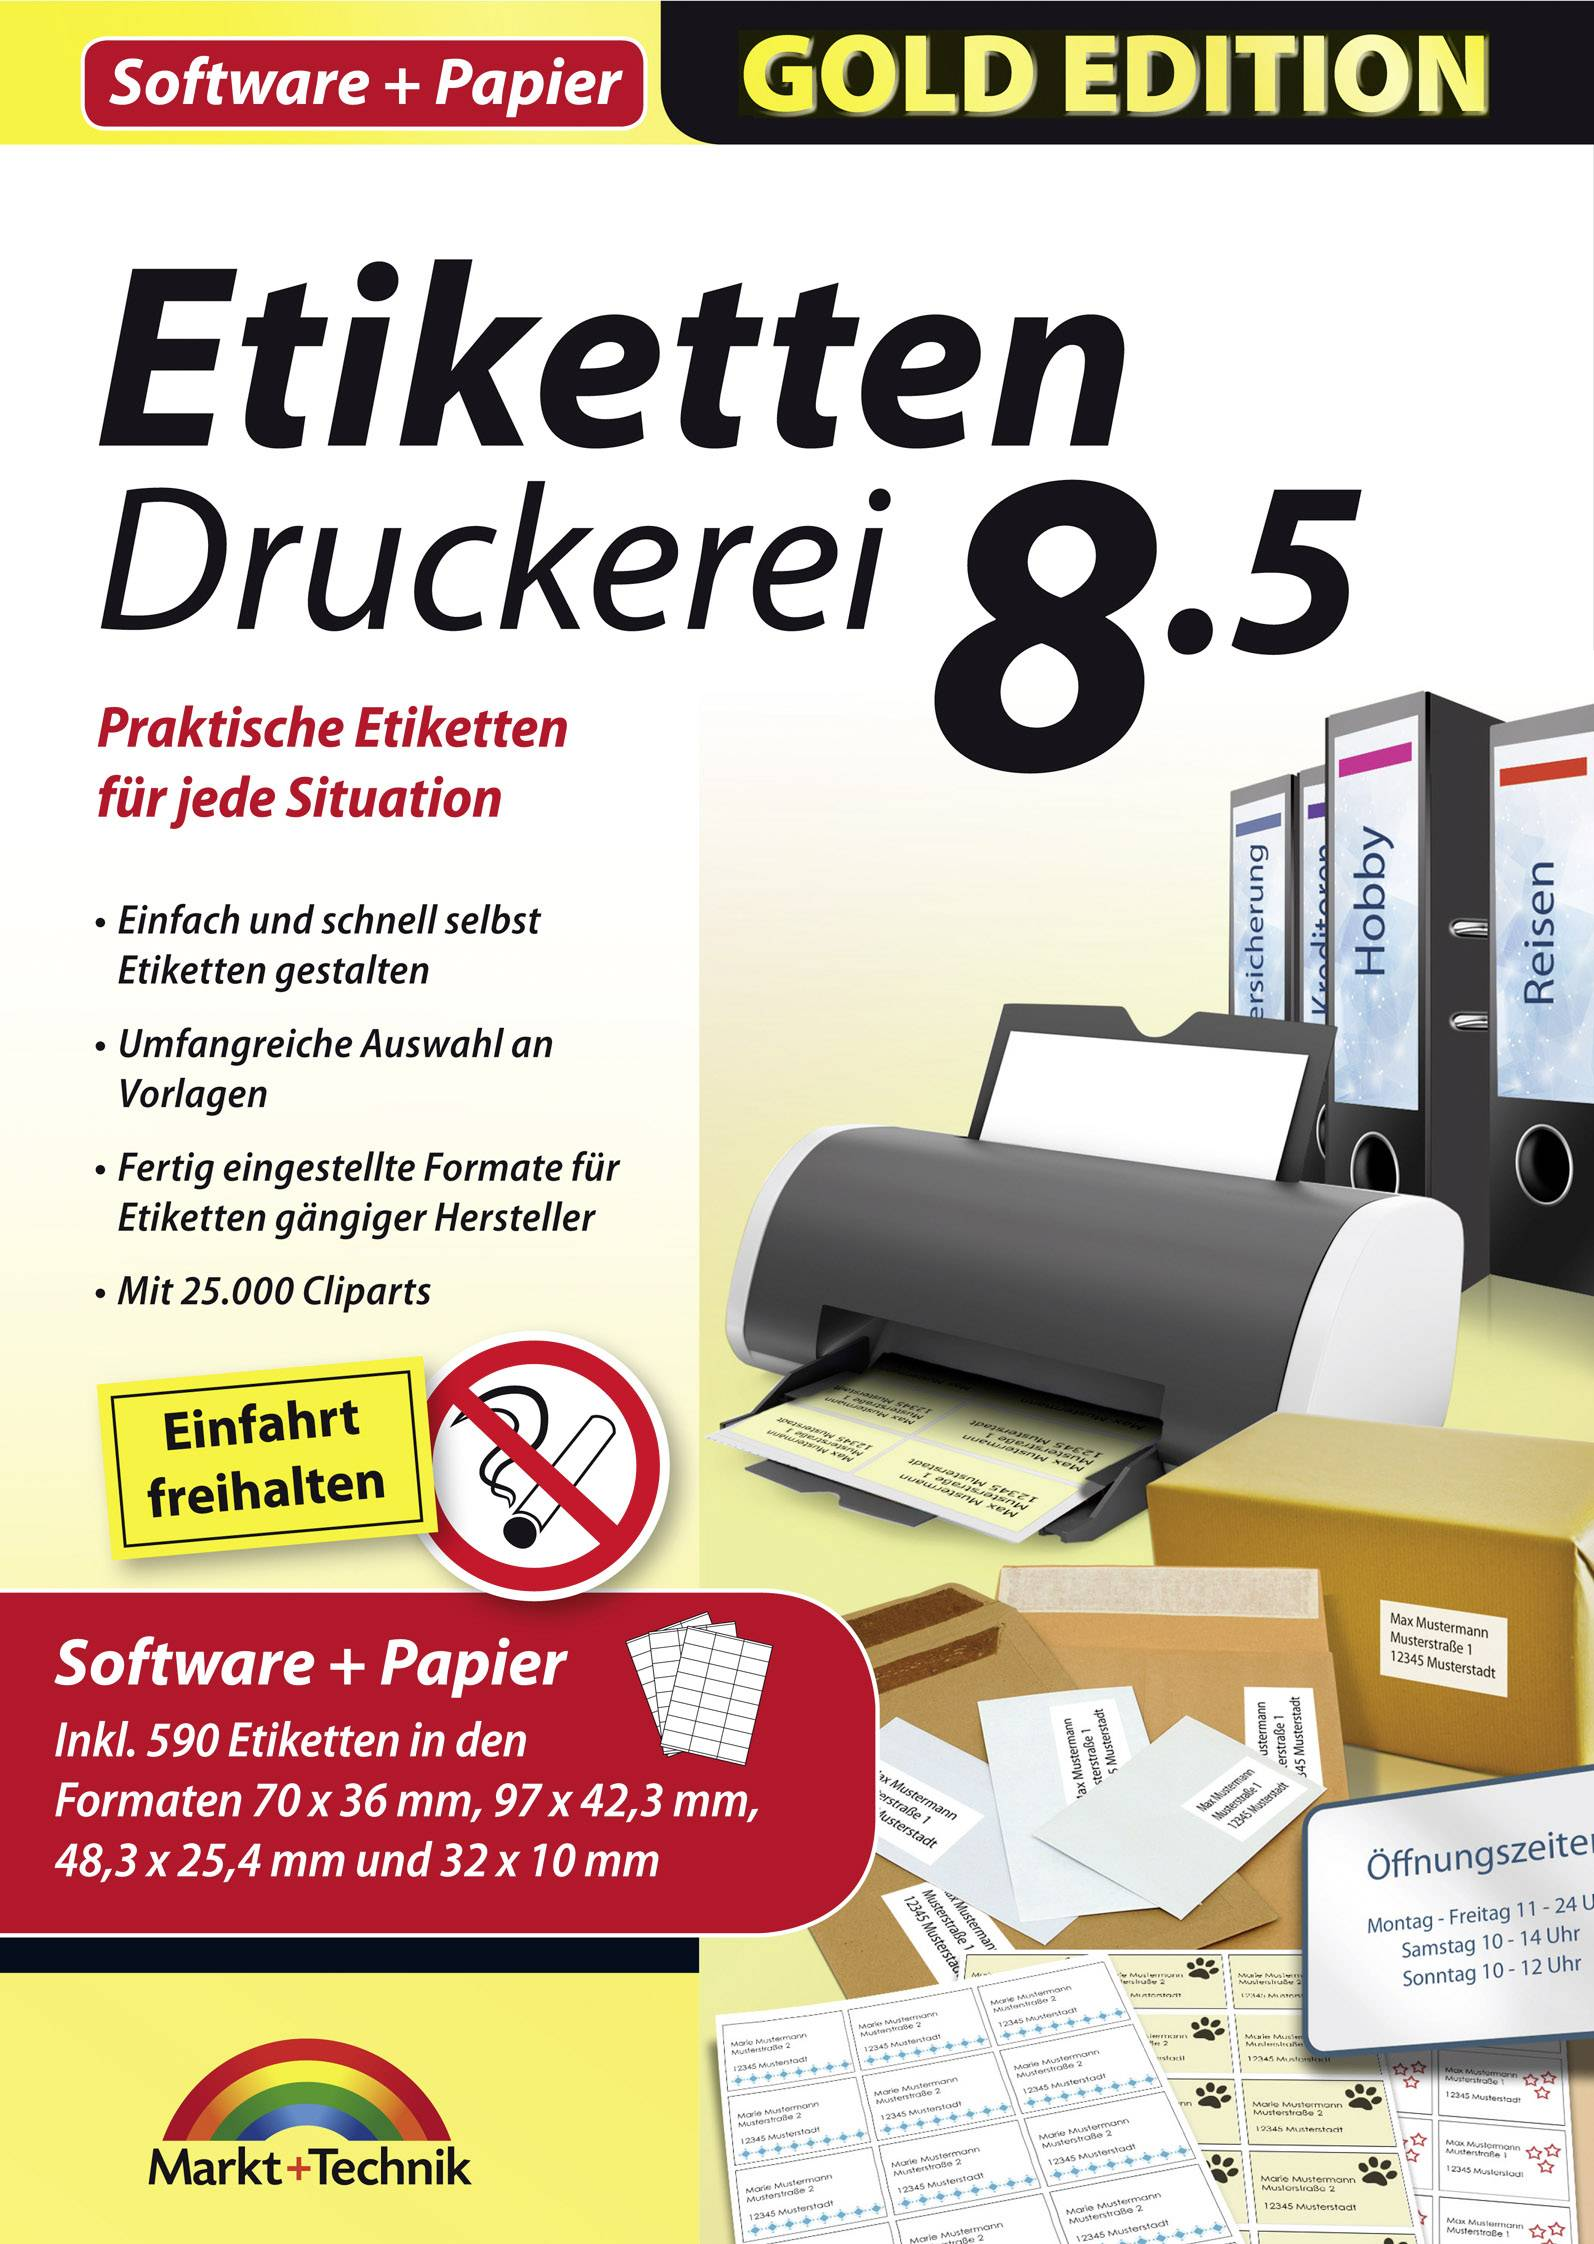 Markt Technik Etiketten Druckerei 8 5 Mit Papier Vollversion 1 Lizenz Windows Etikettendruck Software